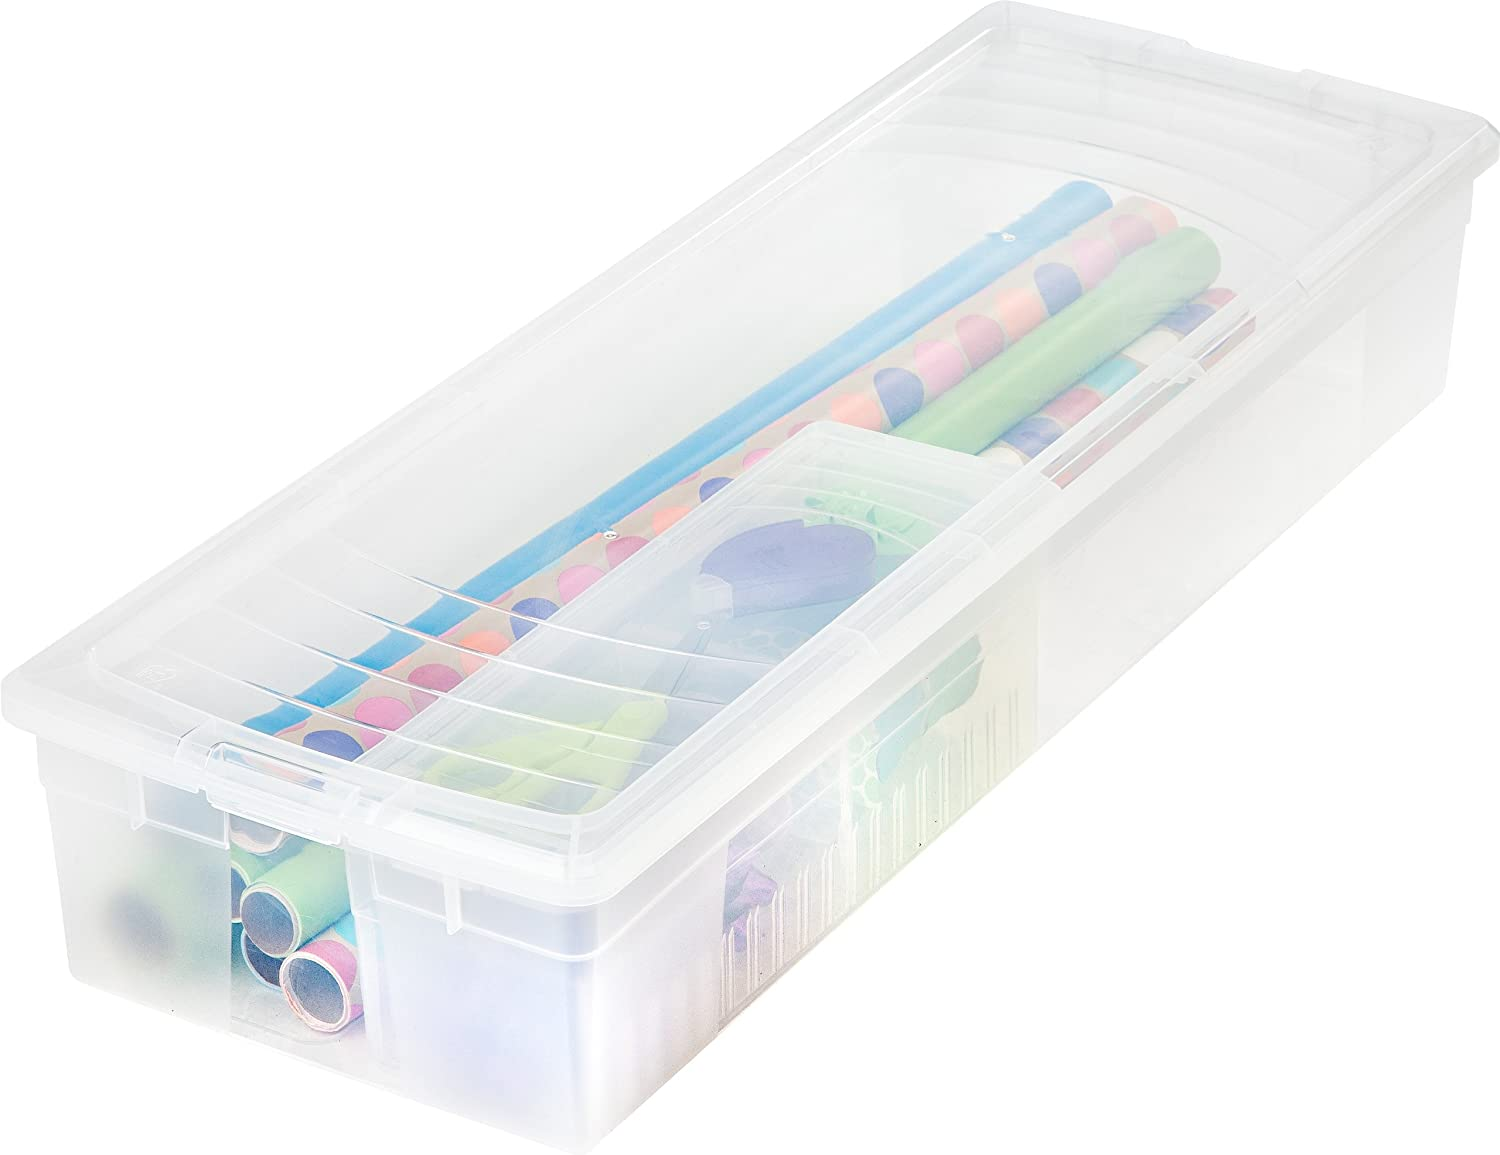 IRIS Wrapping Paper and Ribbon Storage Box Set, 2 Pack, Clear IRIS USA Inc. 105149